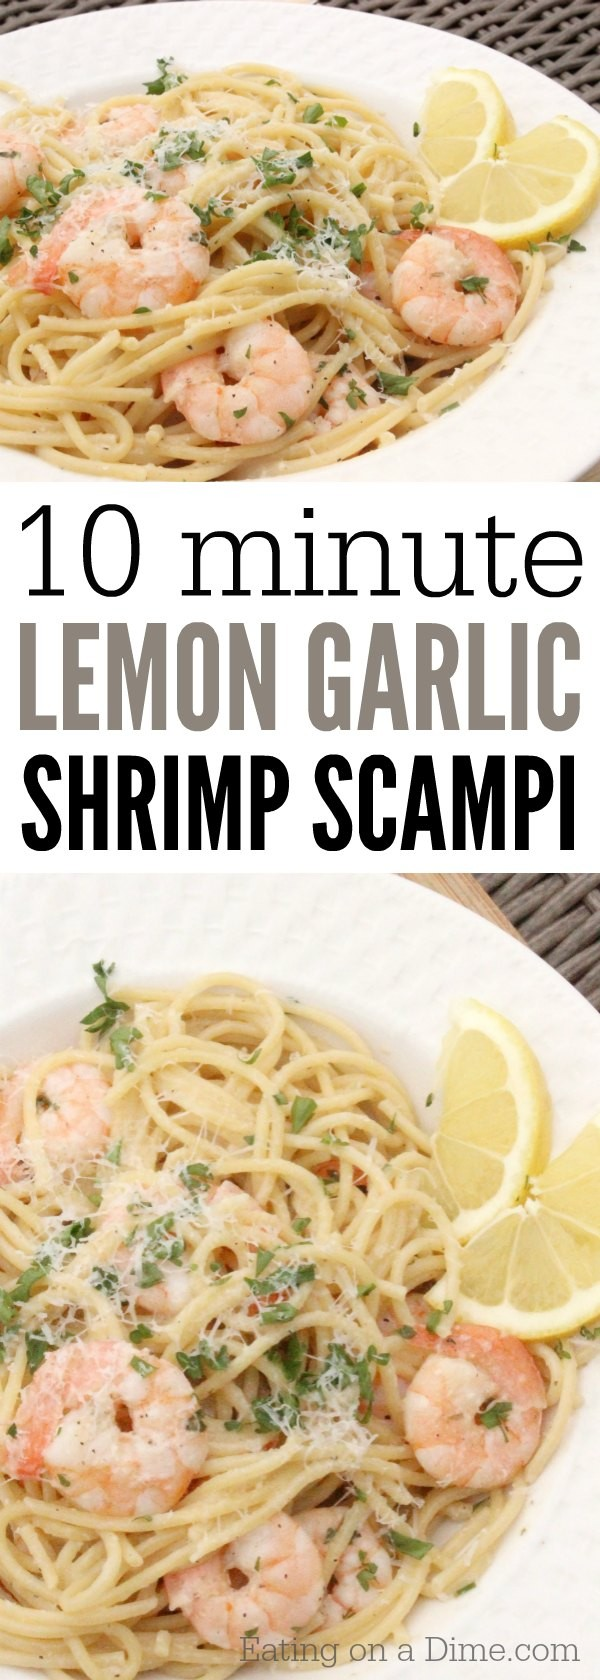 Get the recipe Lemon Garlic Shrimp Scampi @recipes_to_go